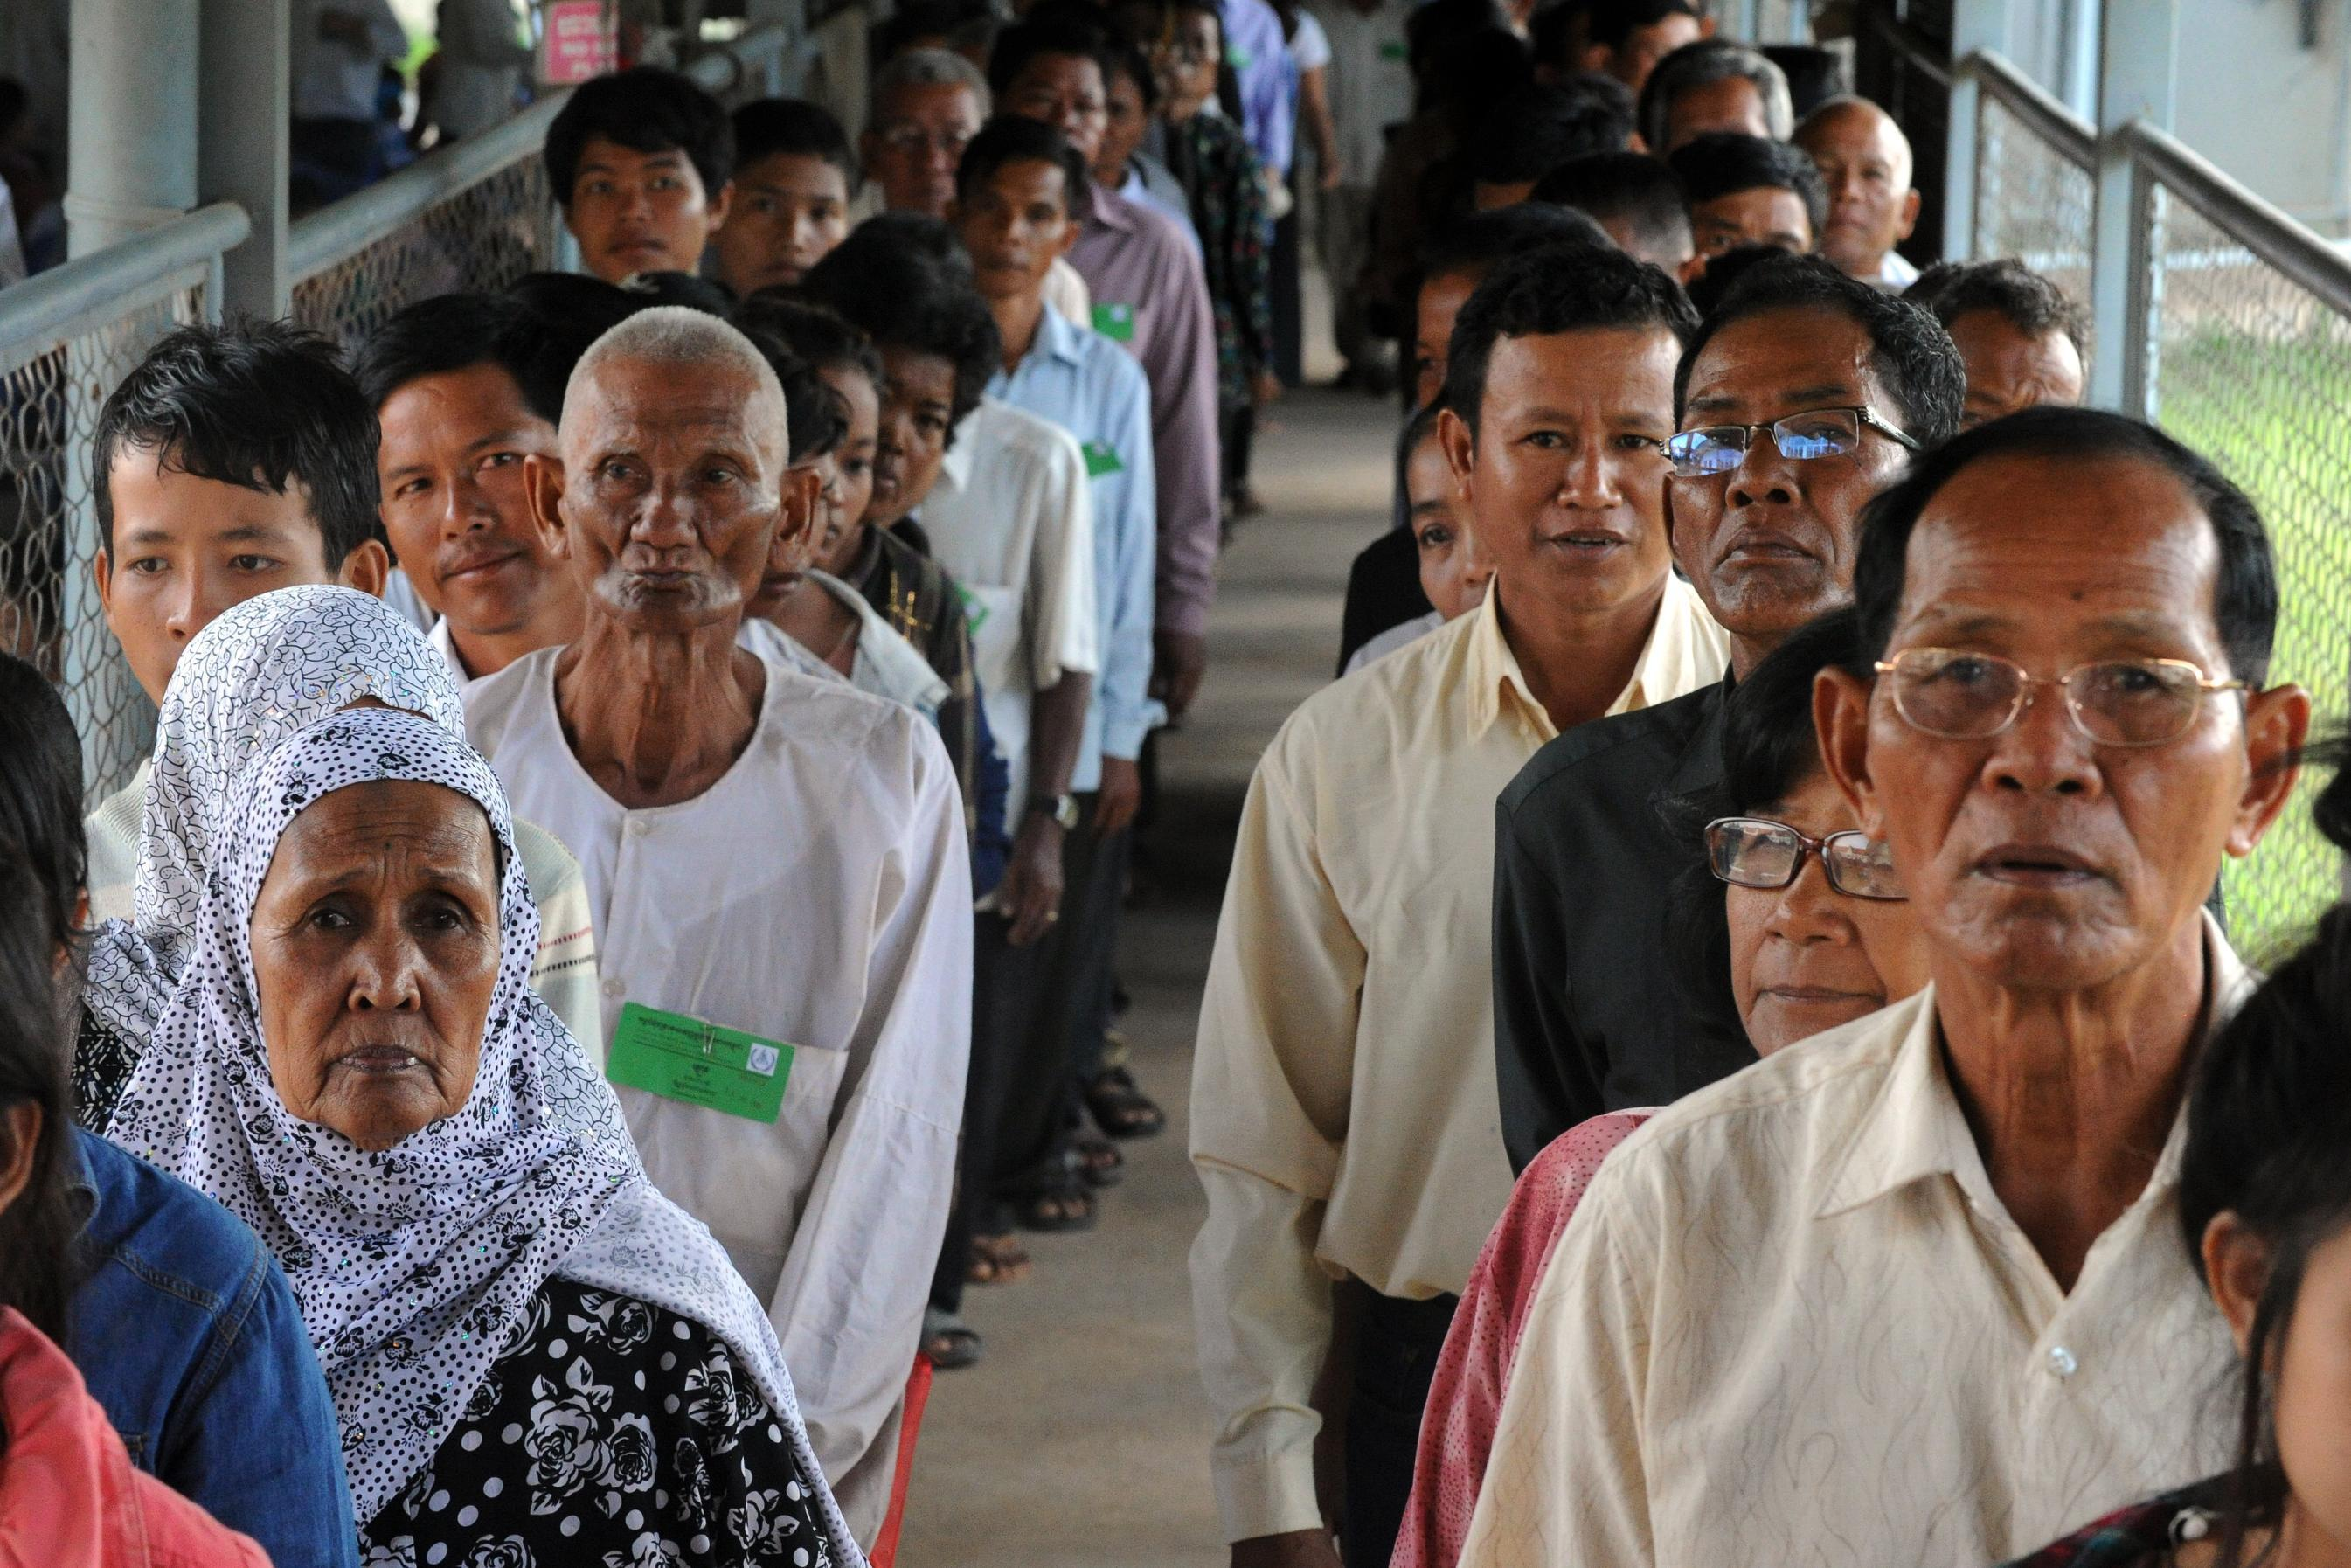 Cambodians line up to attend the start an initial hearing in the second trial against two surviving regime leaders at the Extraordinary Chamber in the Courts of Cambodia (ECCC) in Phnom Penh on July 30, 2014 (AFP Photo/Tang Chhin Sothy)